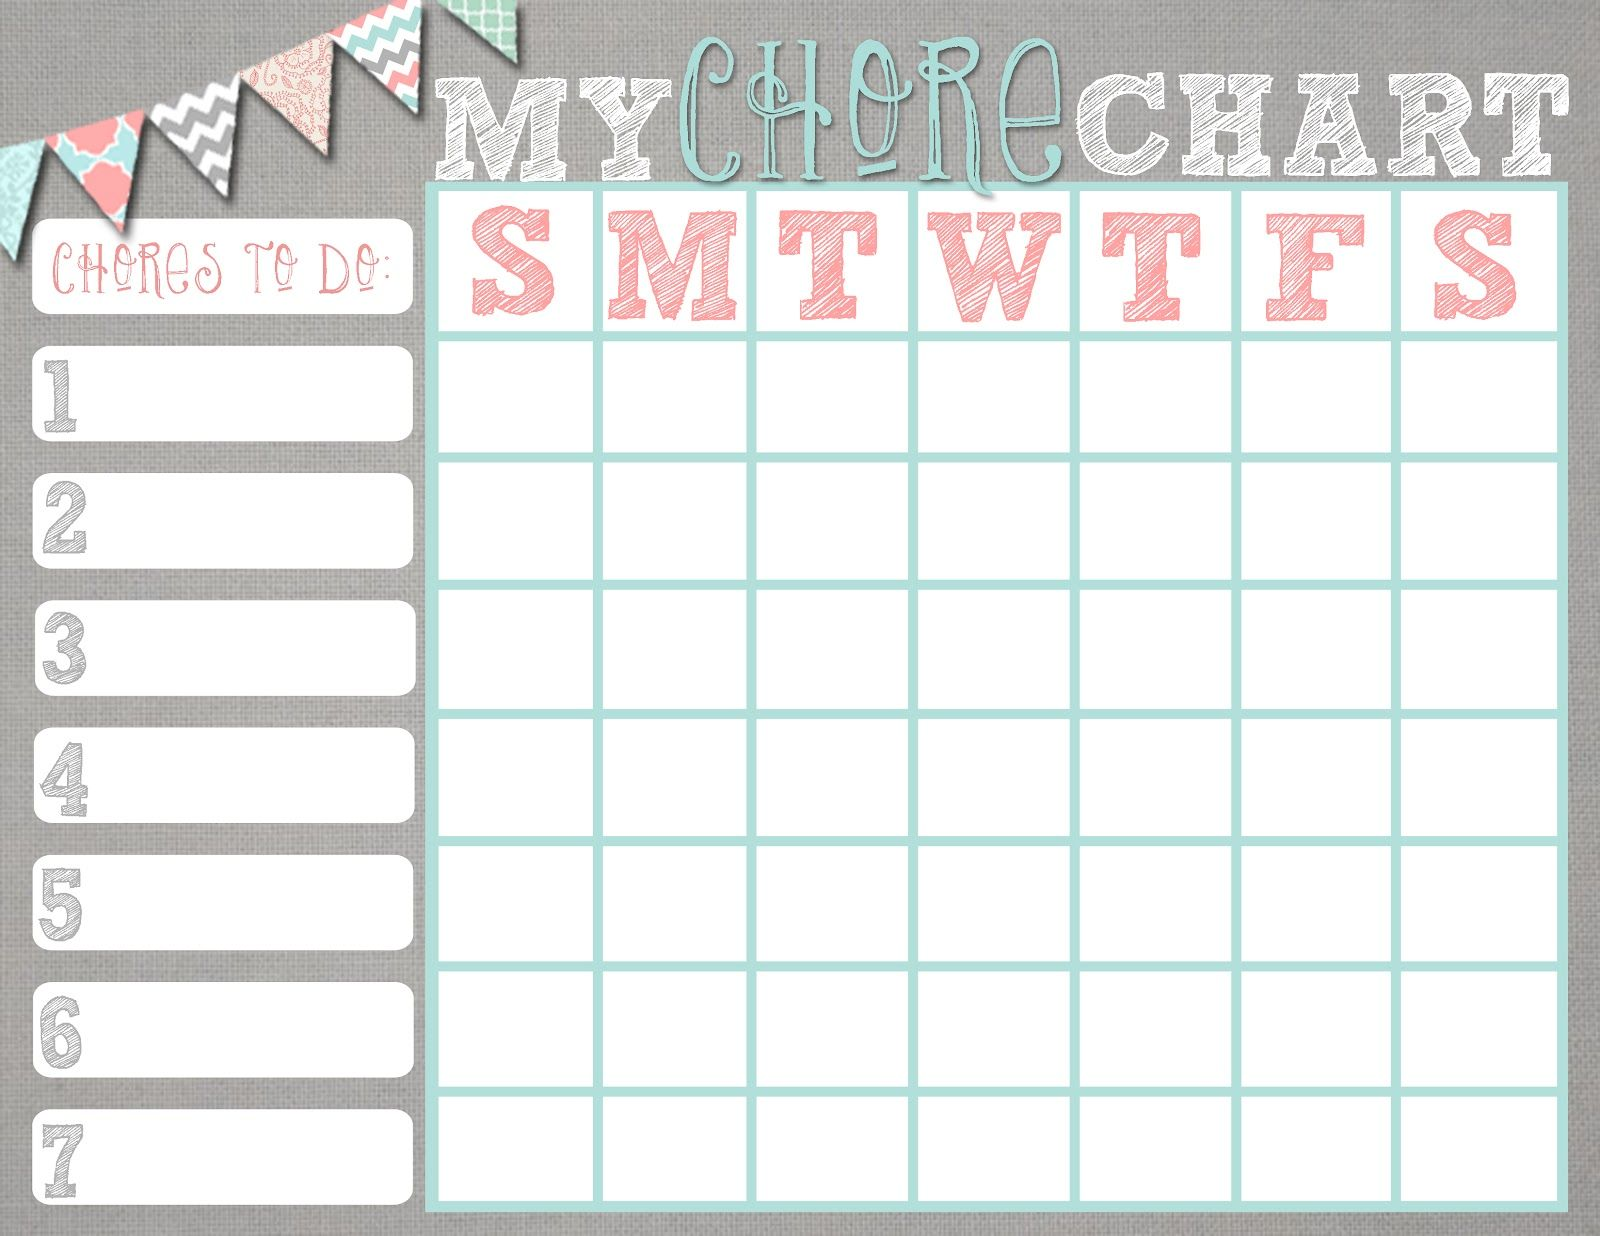 photograph about Chore Chart Printable Free called Absolutely free chore chart printables. Boy and female designs thatll